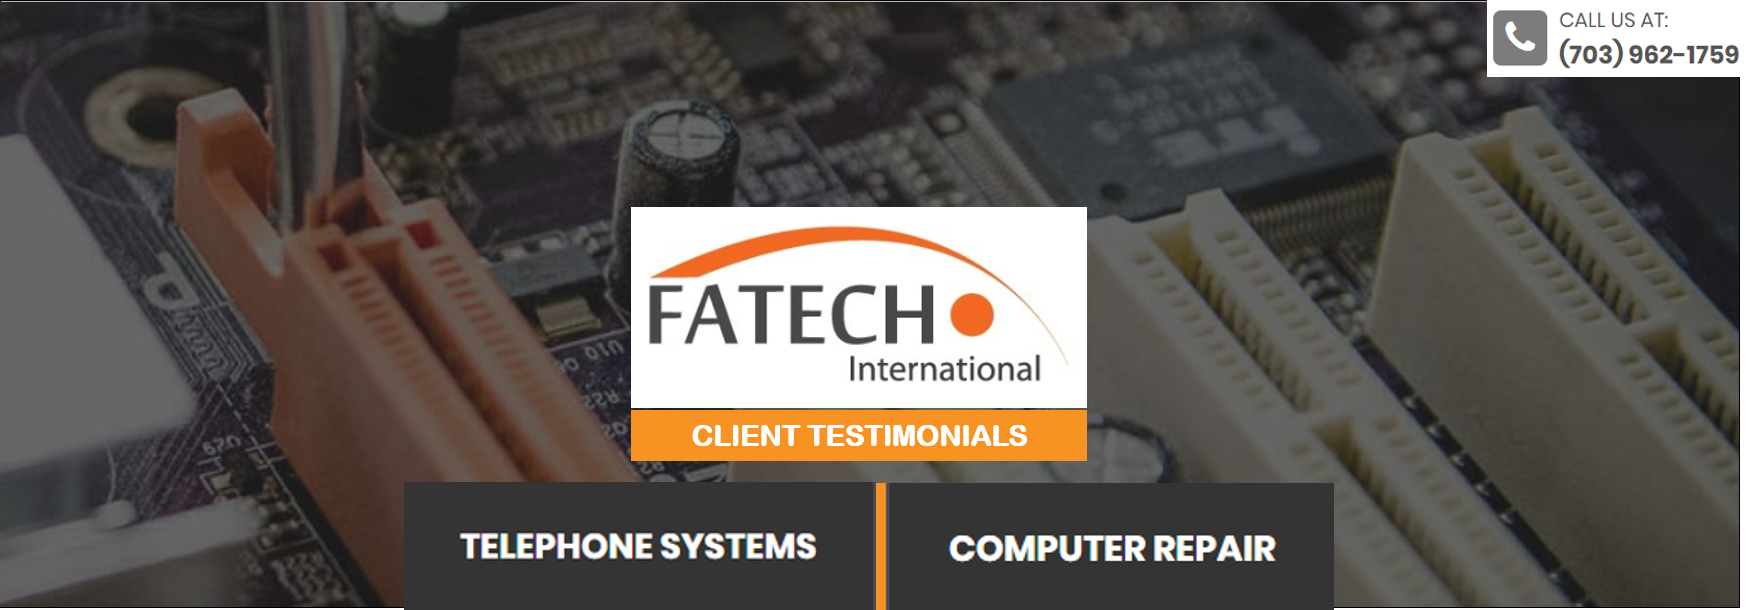 Fatech - Computer Sales & Repair, IT Services reviews | Computers at 585 Grove Street Suite G-10 parking in rear - Herndon VA